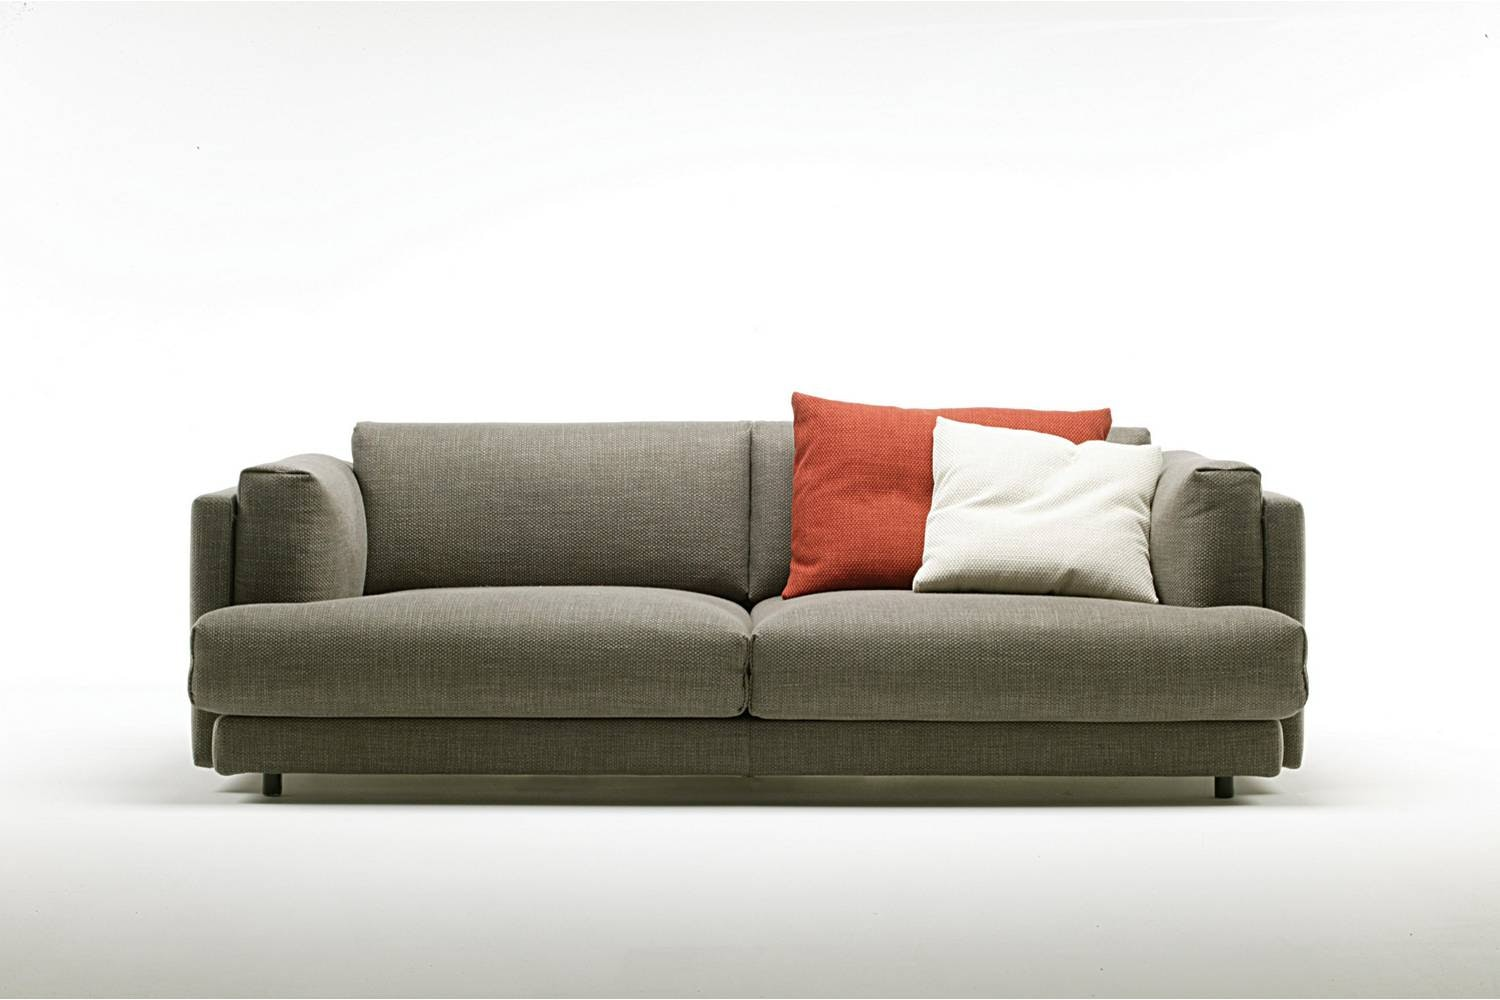 Family Lounge Sofa by Piero Lissoni for Living Divani